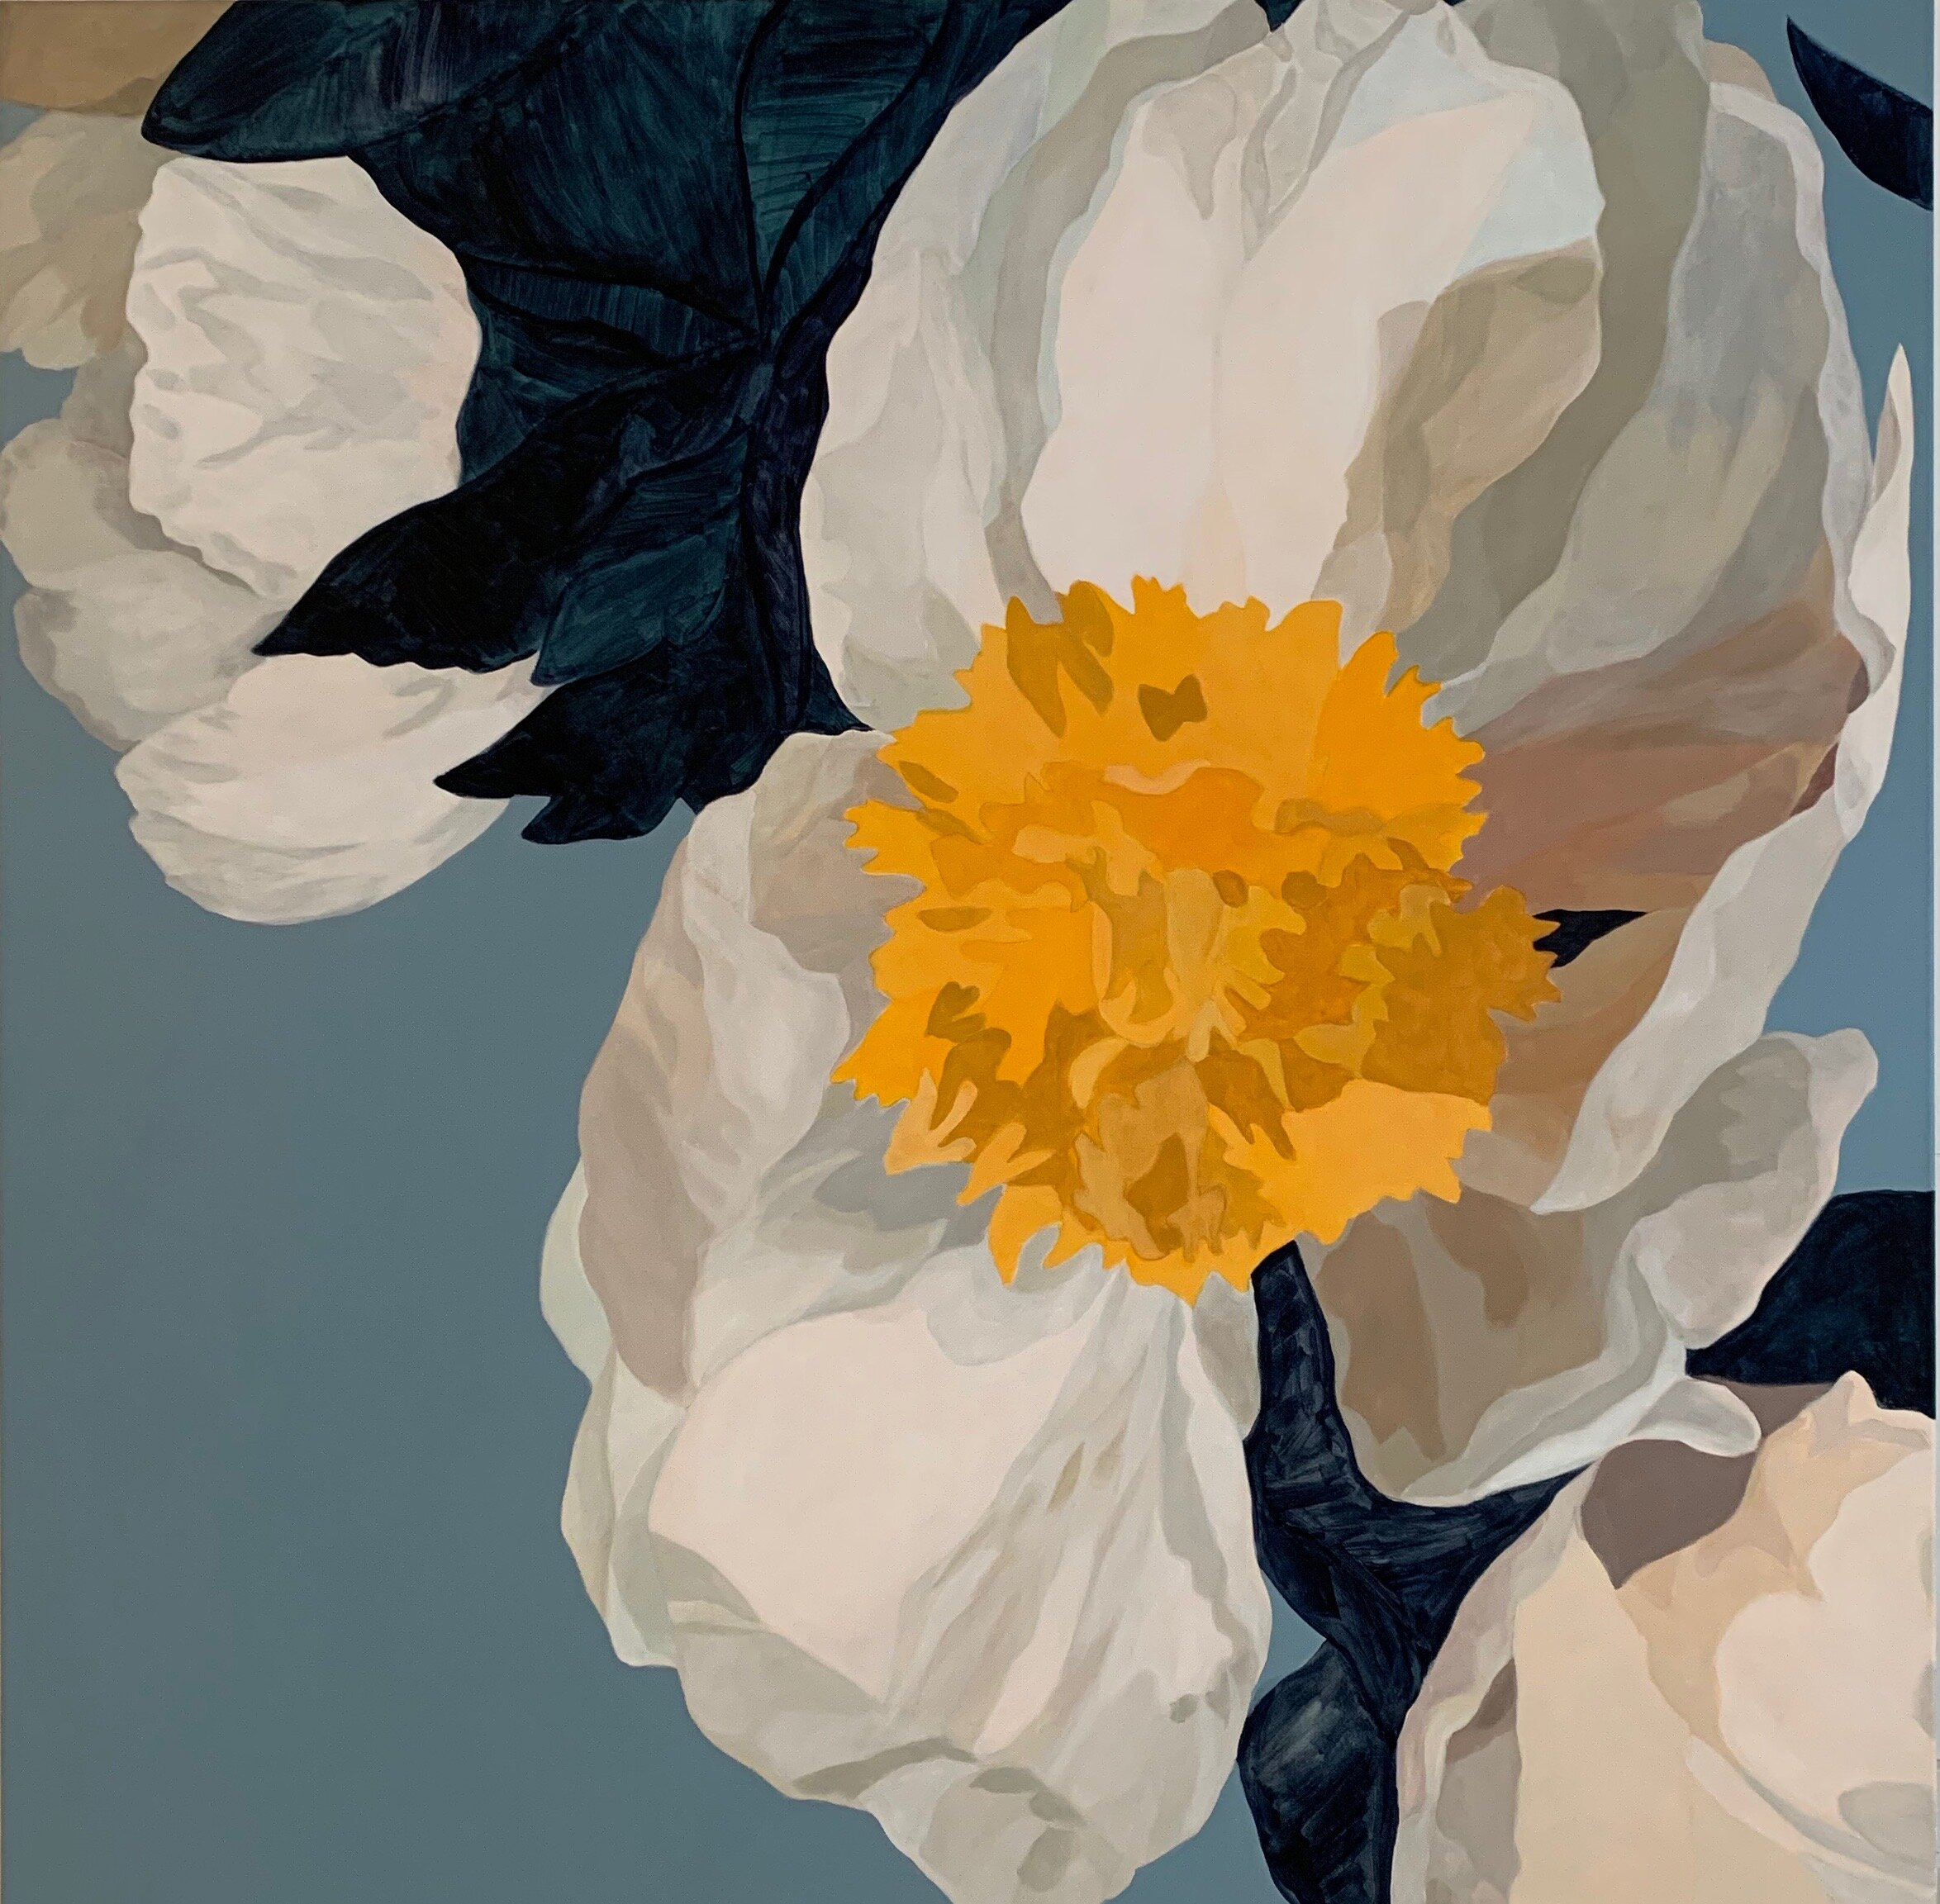 neicyfrey-white peonies on clear blue40x40.jpeg